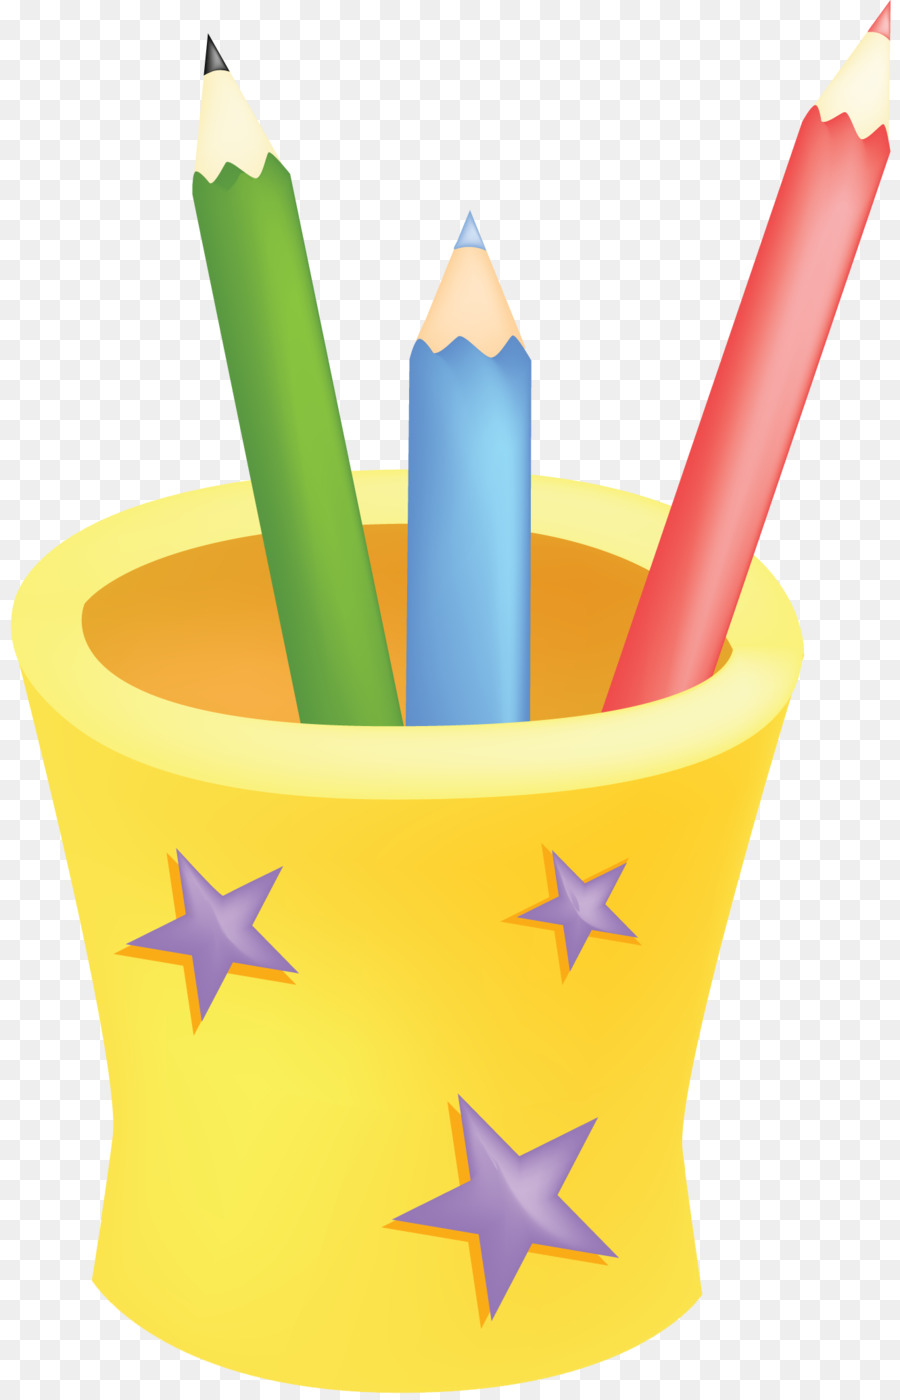 Stationery Brush pot Pencil Cartoon  drawn png download